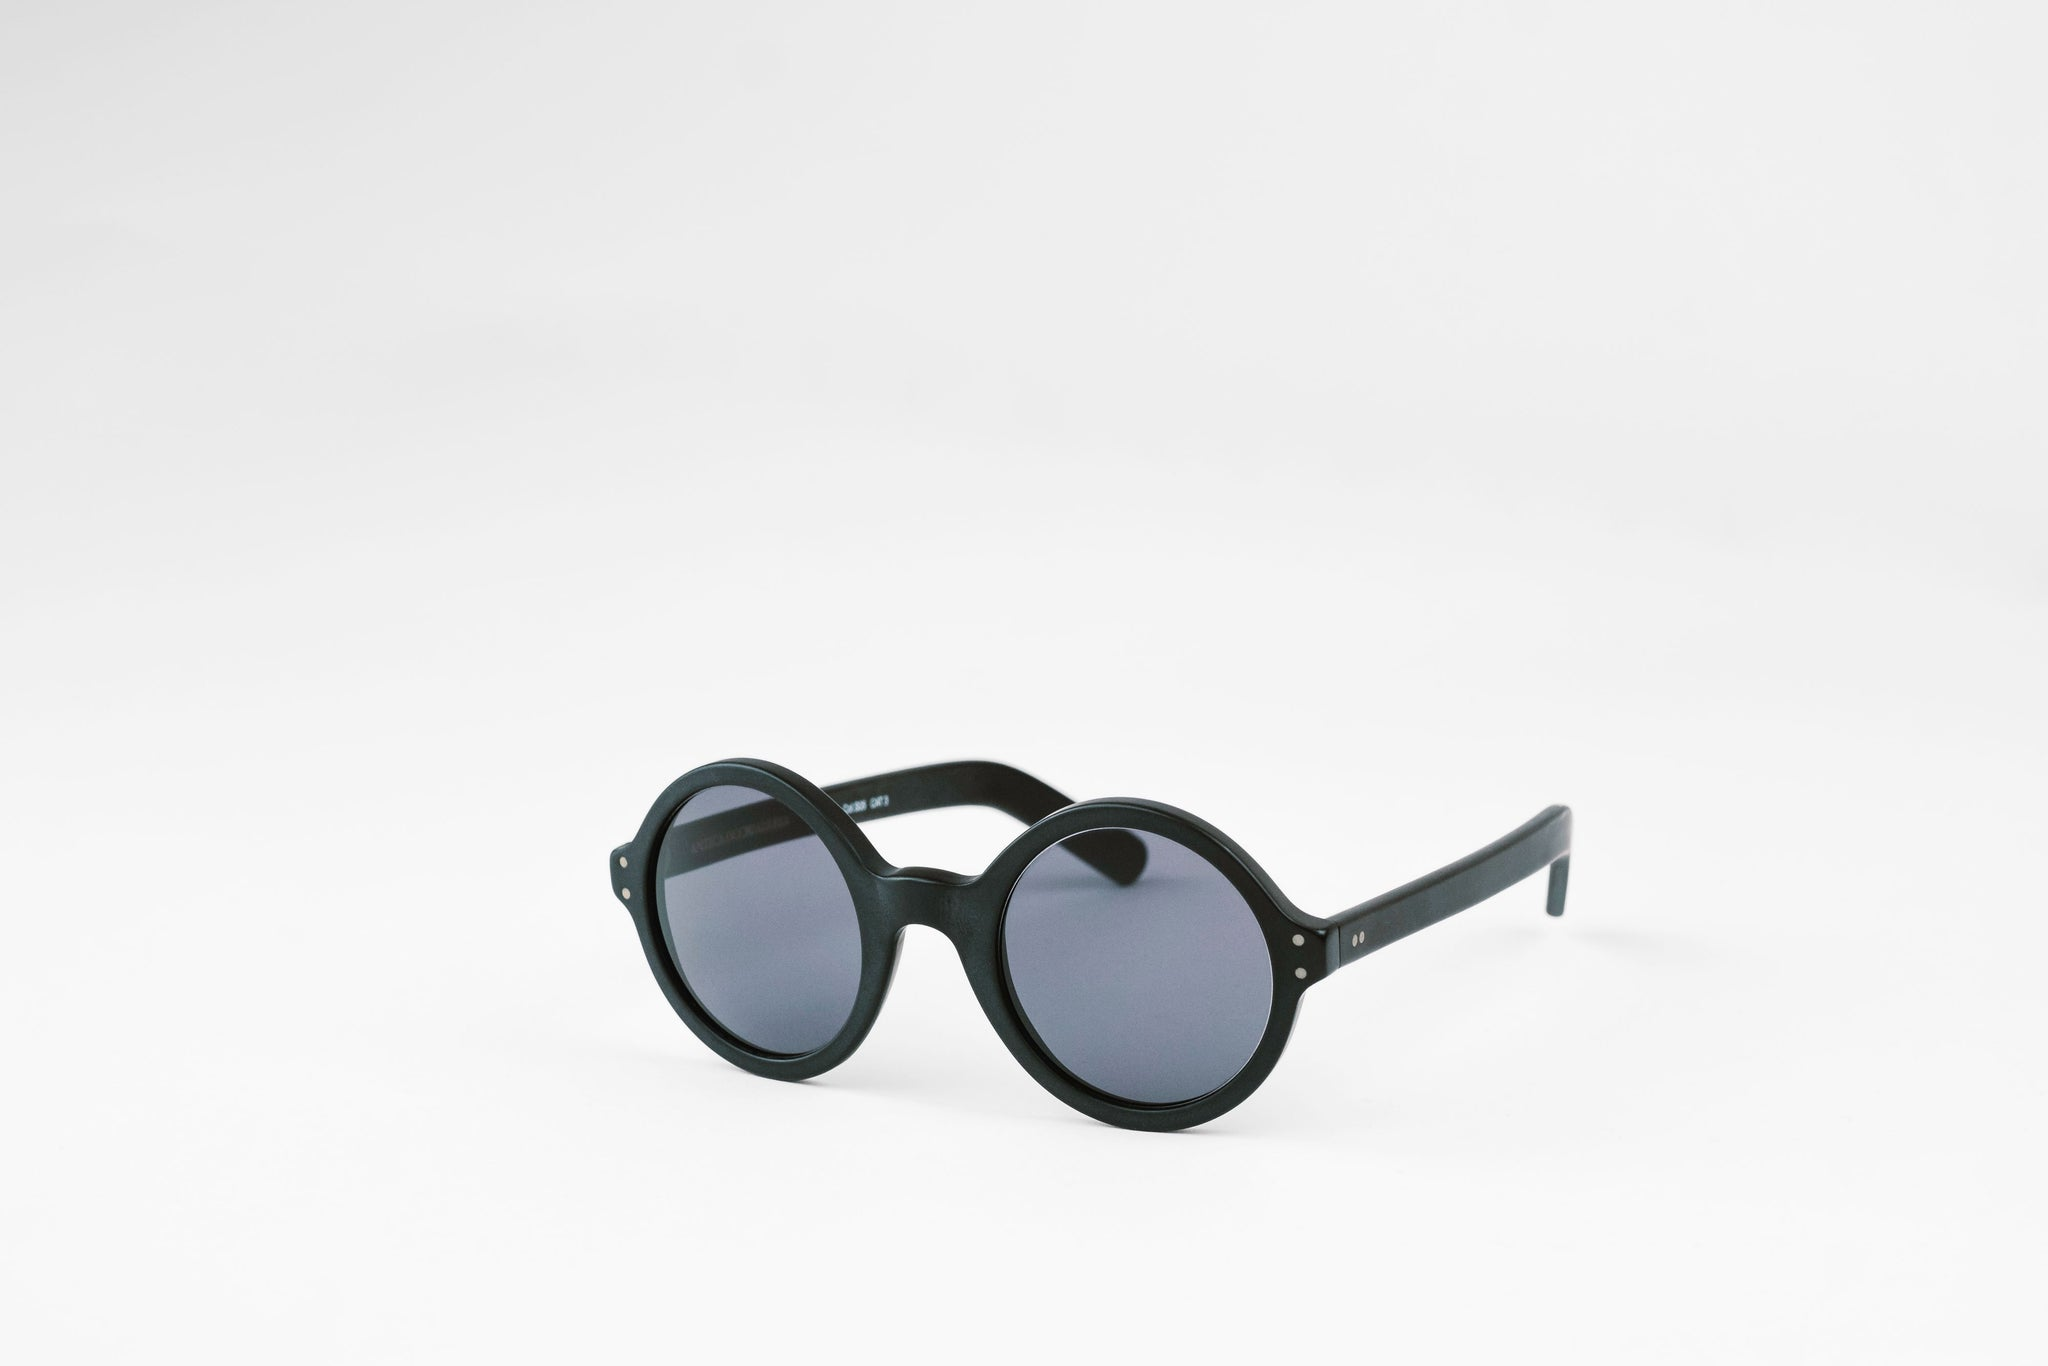 Giotto Sunglasses - Lesetta